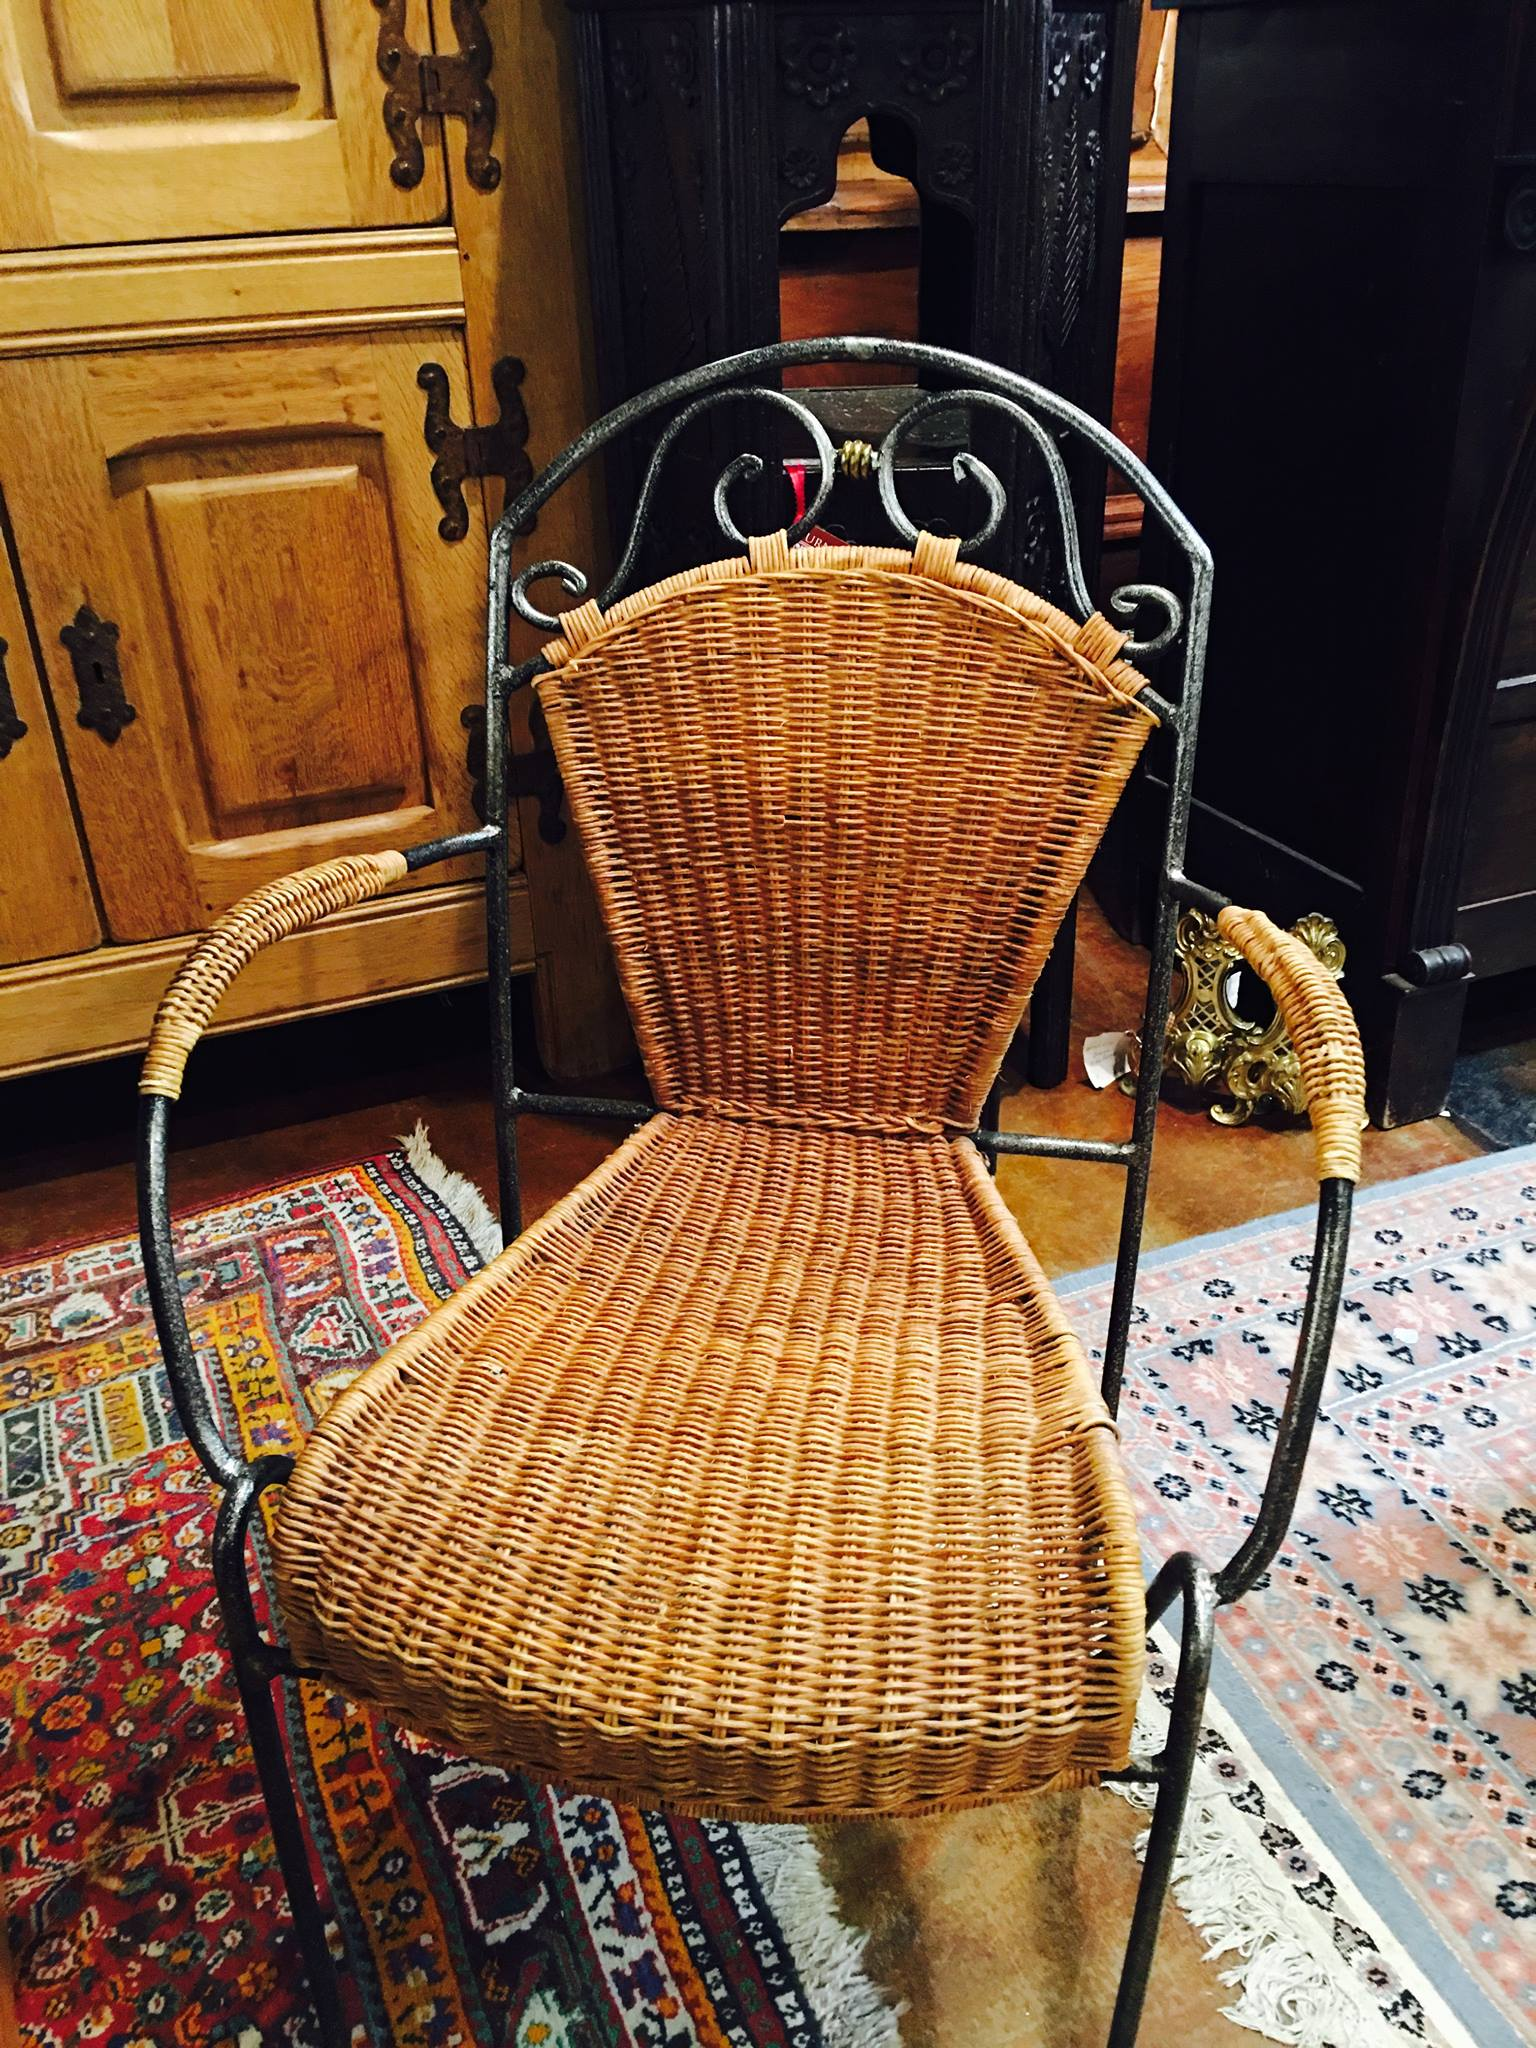 Just in, a set of four adorable wicker and iron chairs! One arm chair and three side chairs, priced at $120. Perfect for your sun room or breakfast nook! 2195 Calder Ave, Beaumont Tx, 77701, 409.835.3080.  #burnsantikhaus  #europeanimporters  #vintage  #shopsmall